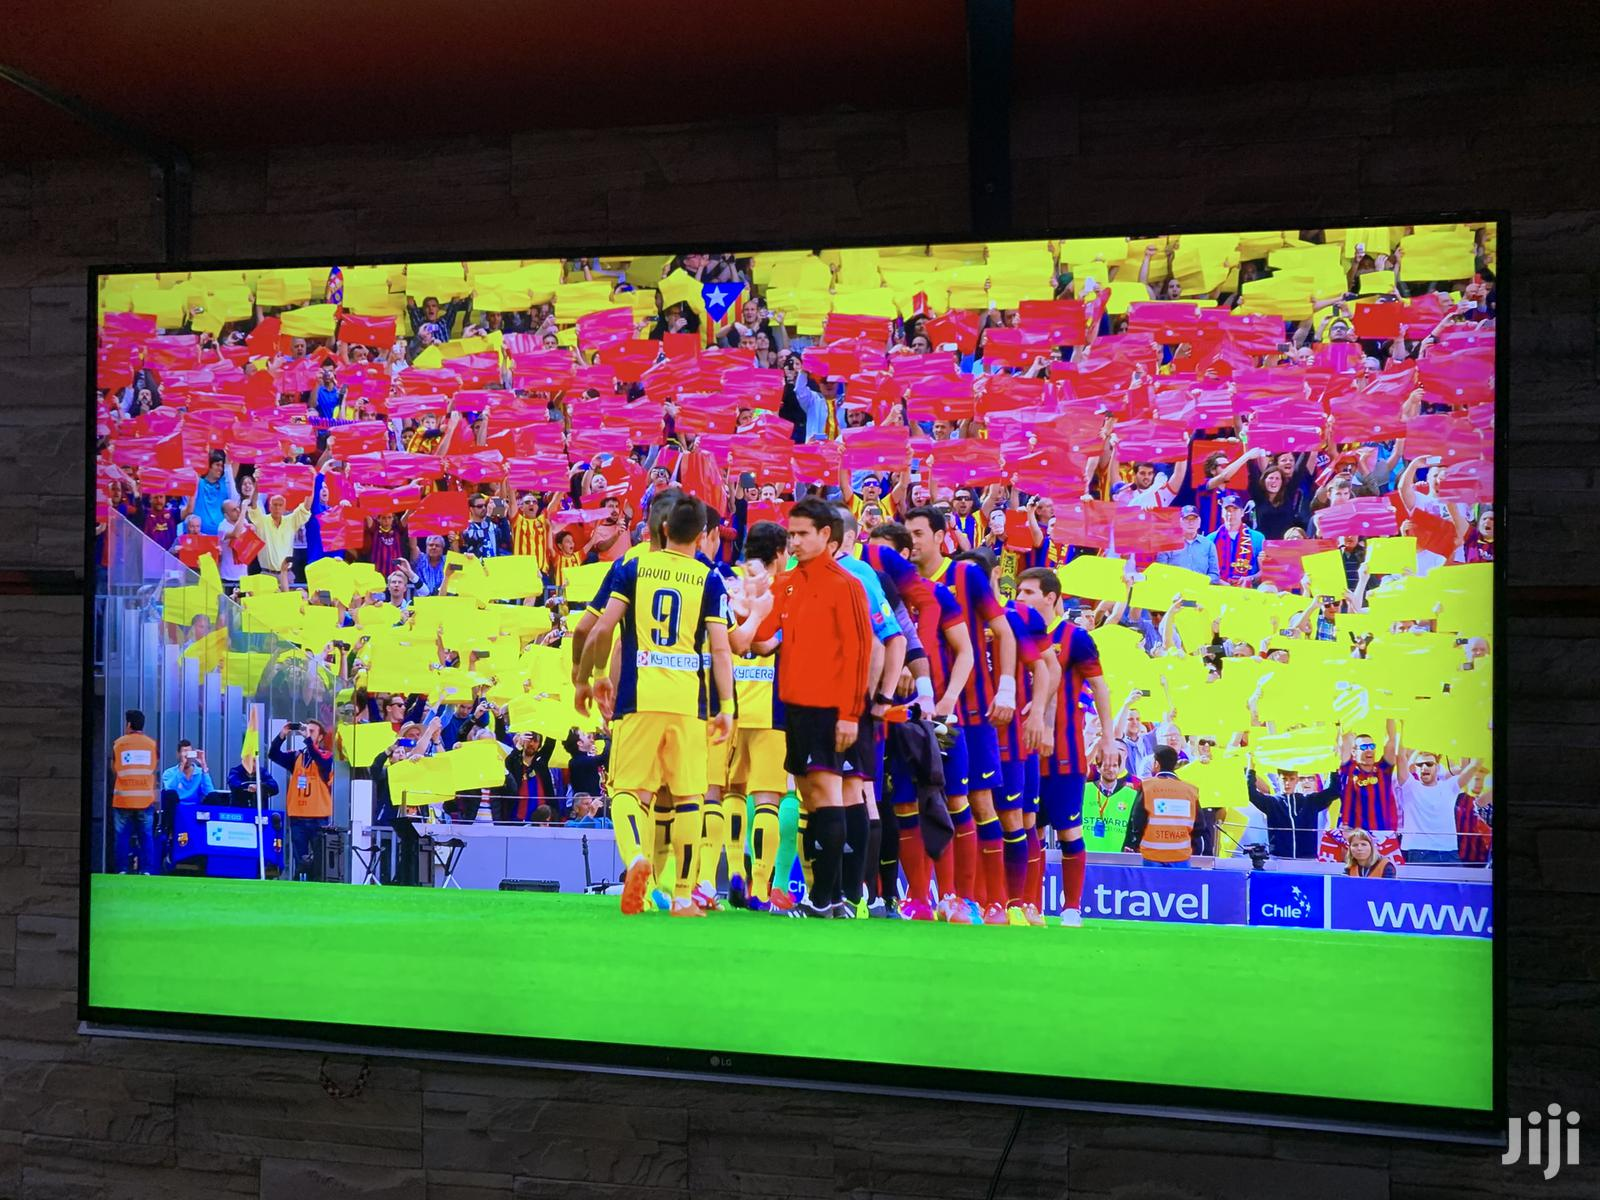 LG 65inches Smart Uhd 4K 3D Enabled | TV & DVD Equipment for sale in Kampala, Central Region, Uganda